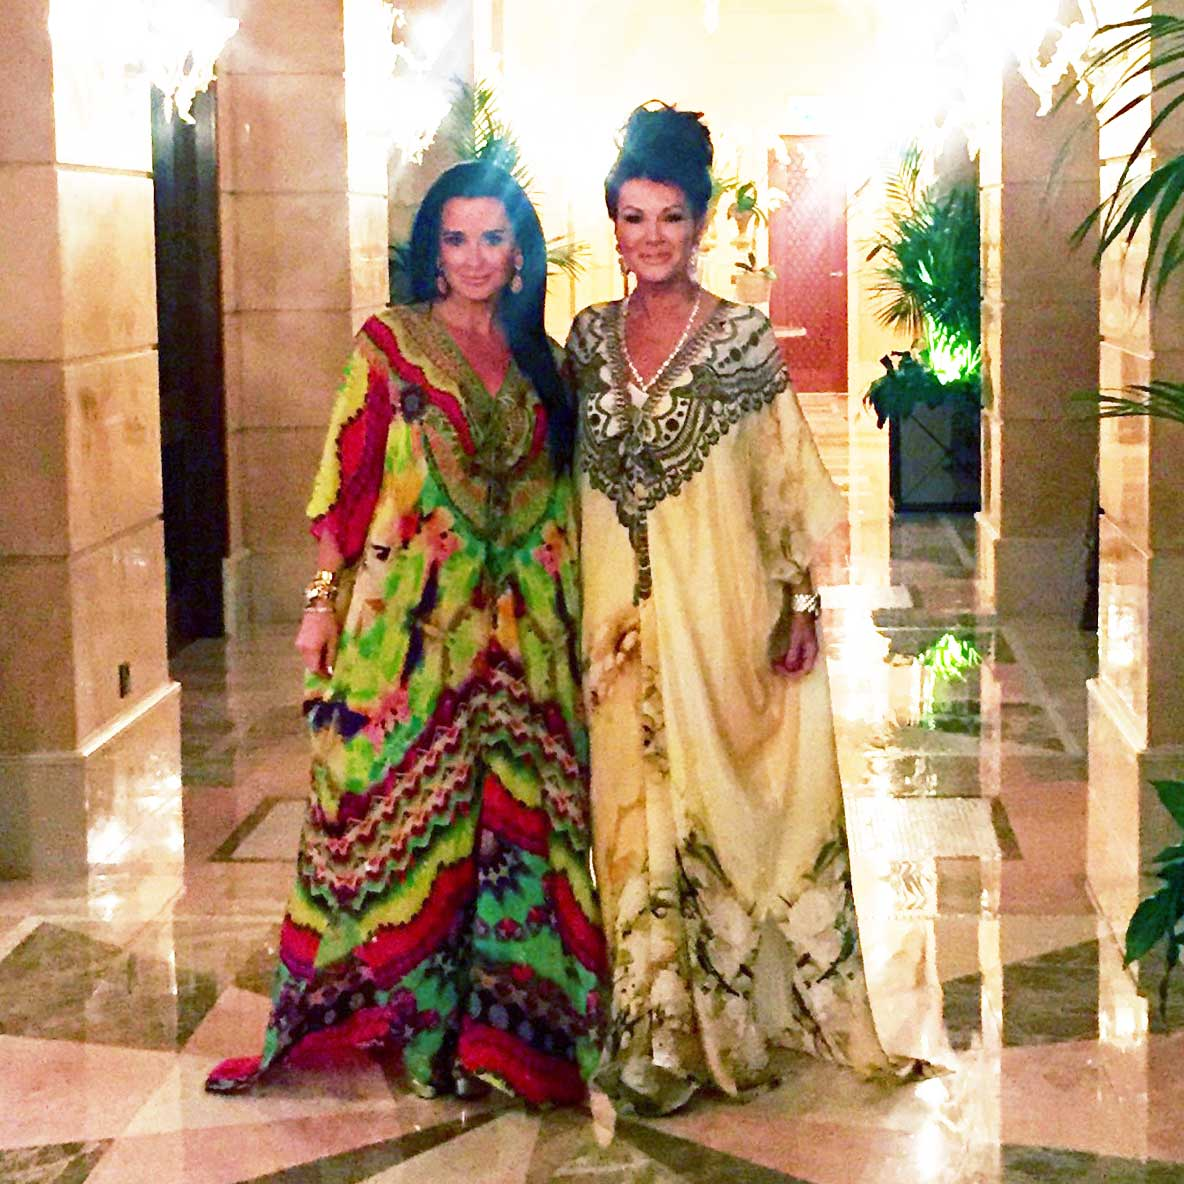 Kyle Richards and Lisa Vanderpump in Shahida Parides on the Real Housewives of Beverly Hills